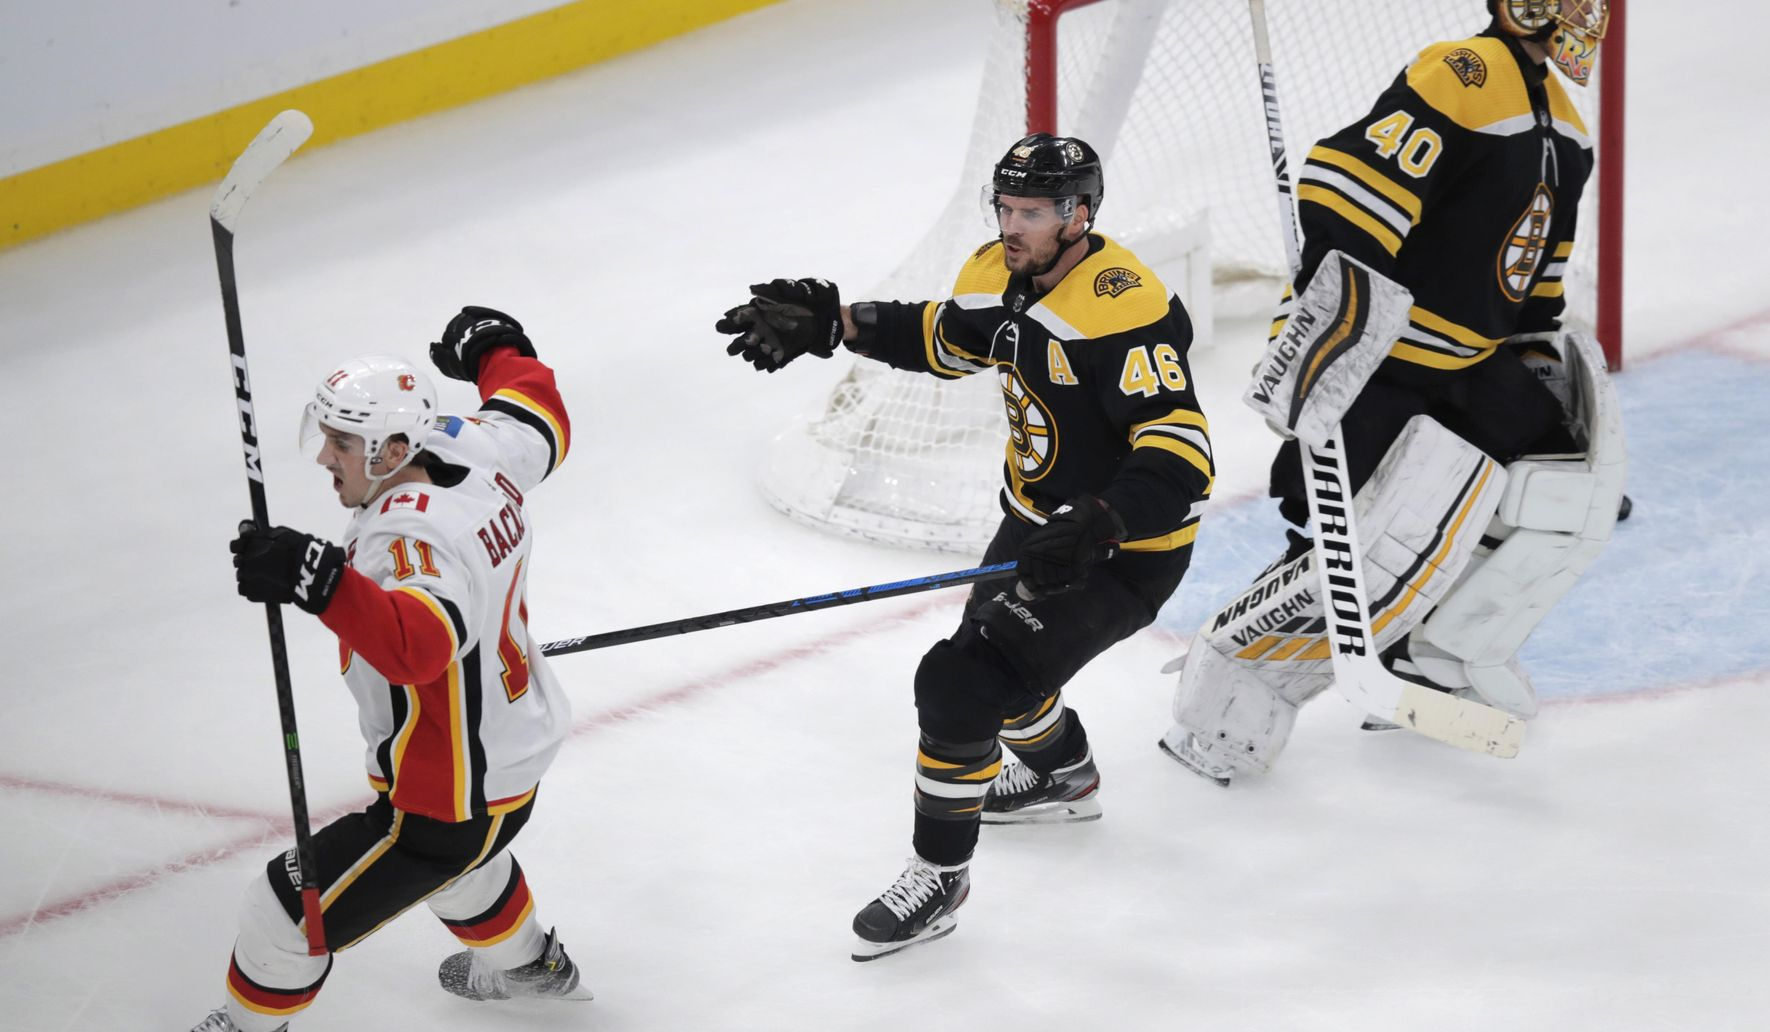 Flames_bruins_hockey_36830_c0-197-4699-2936_s1770x1032